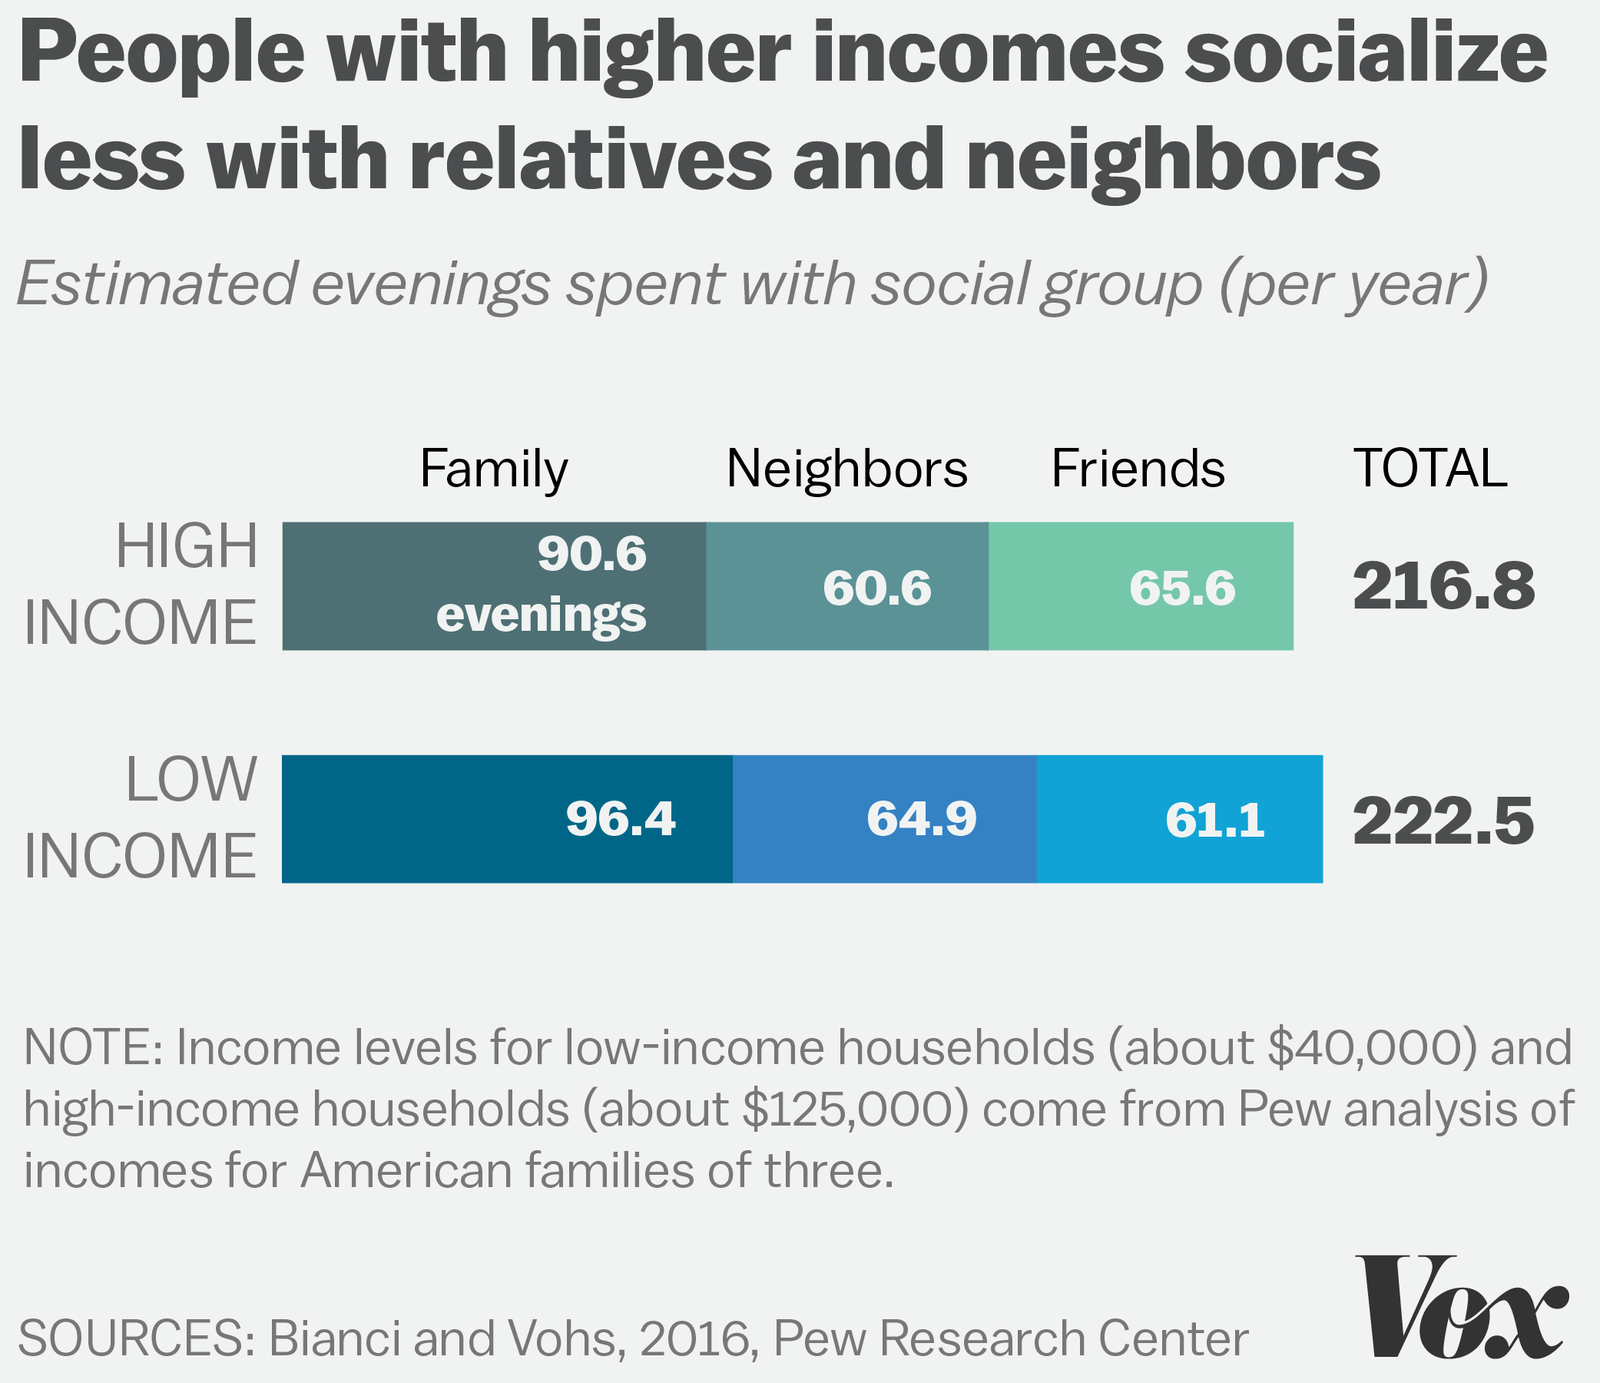 income and social worlds1.png